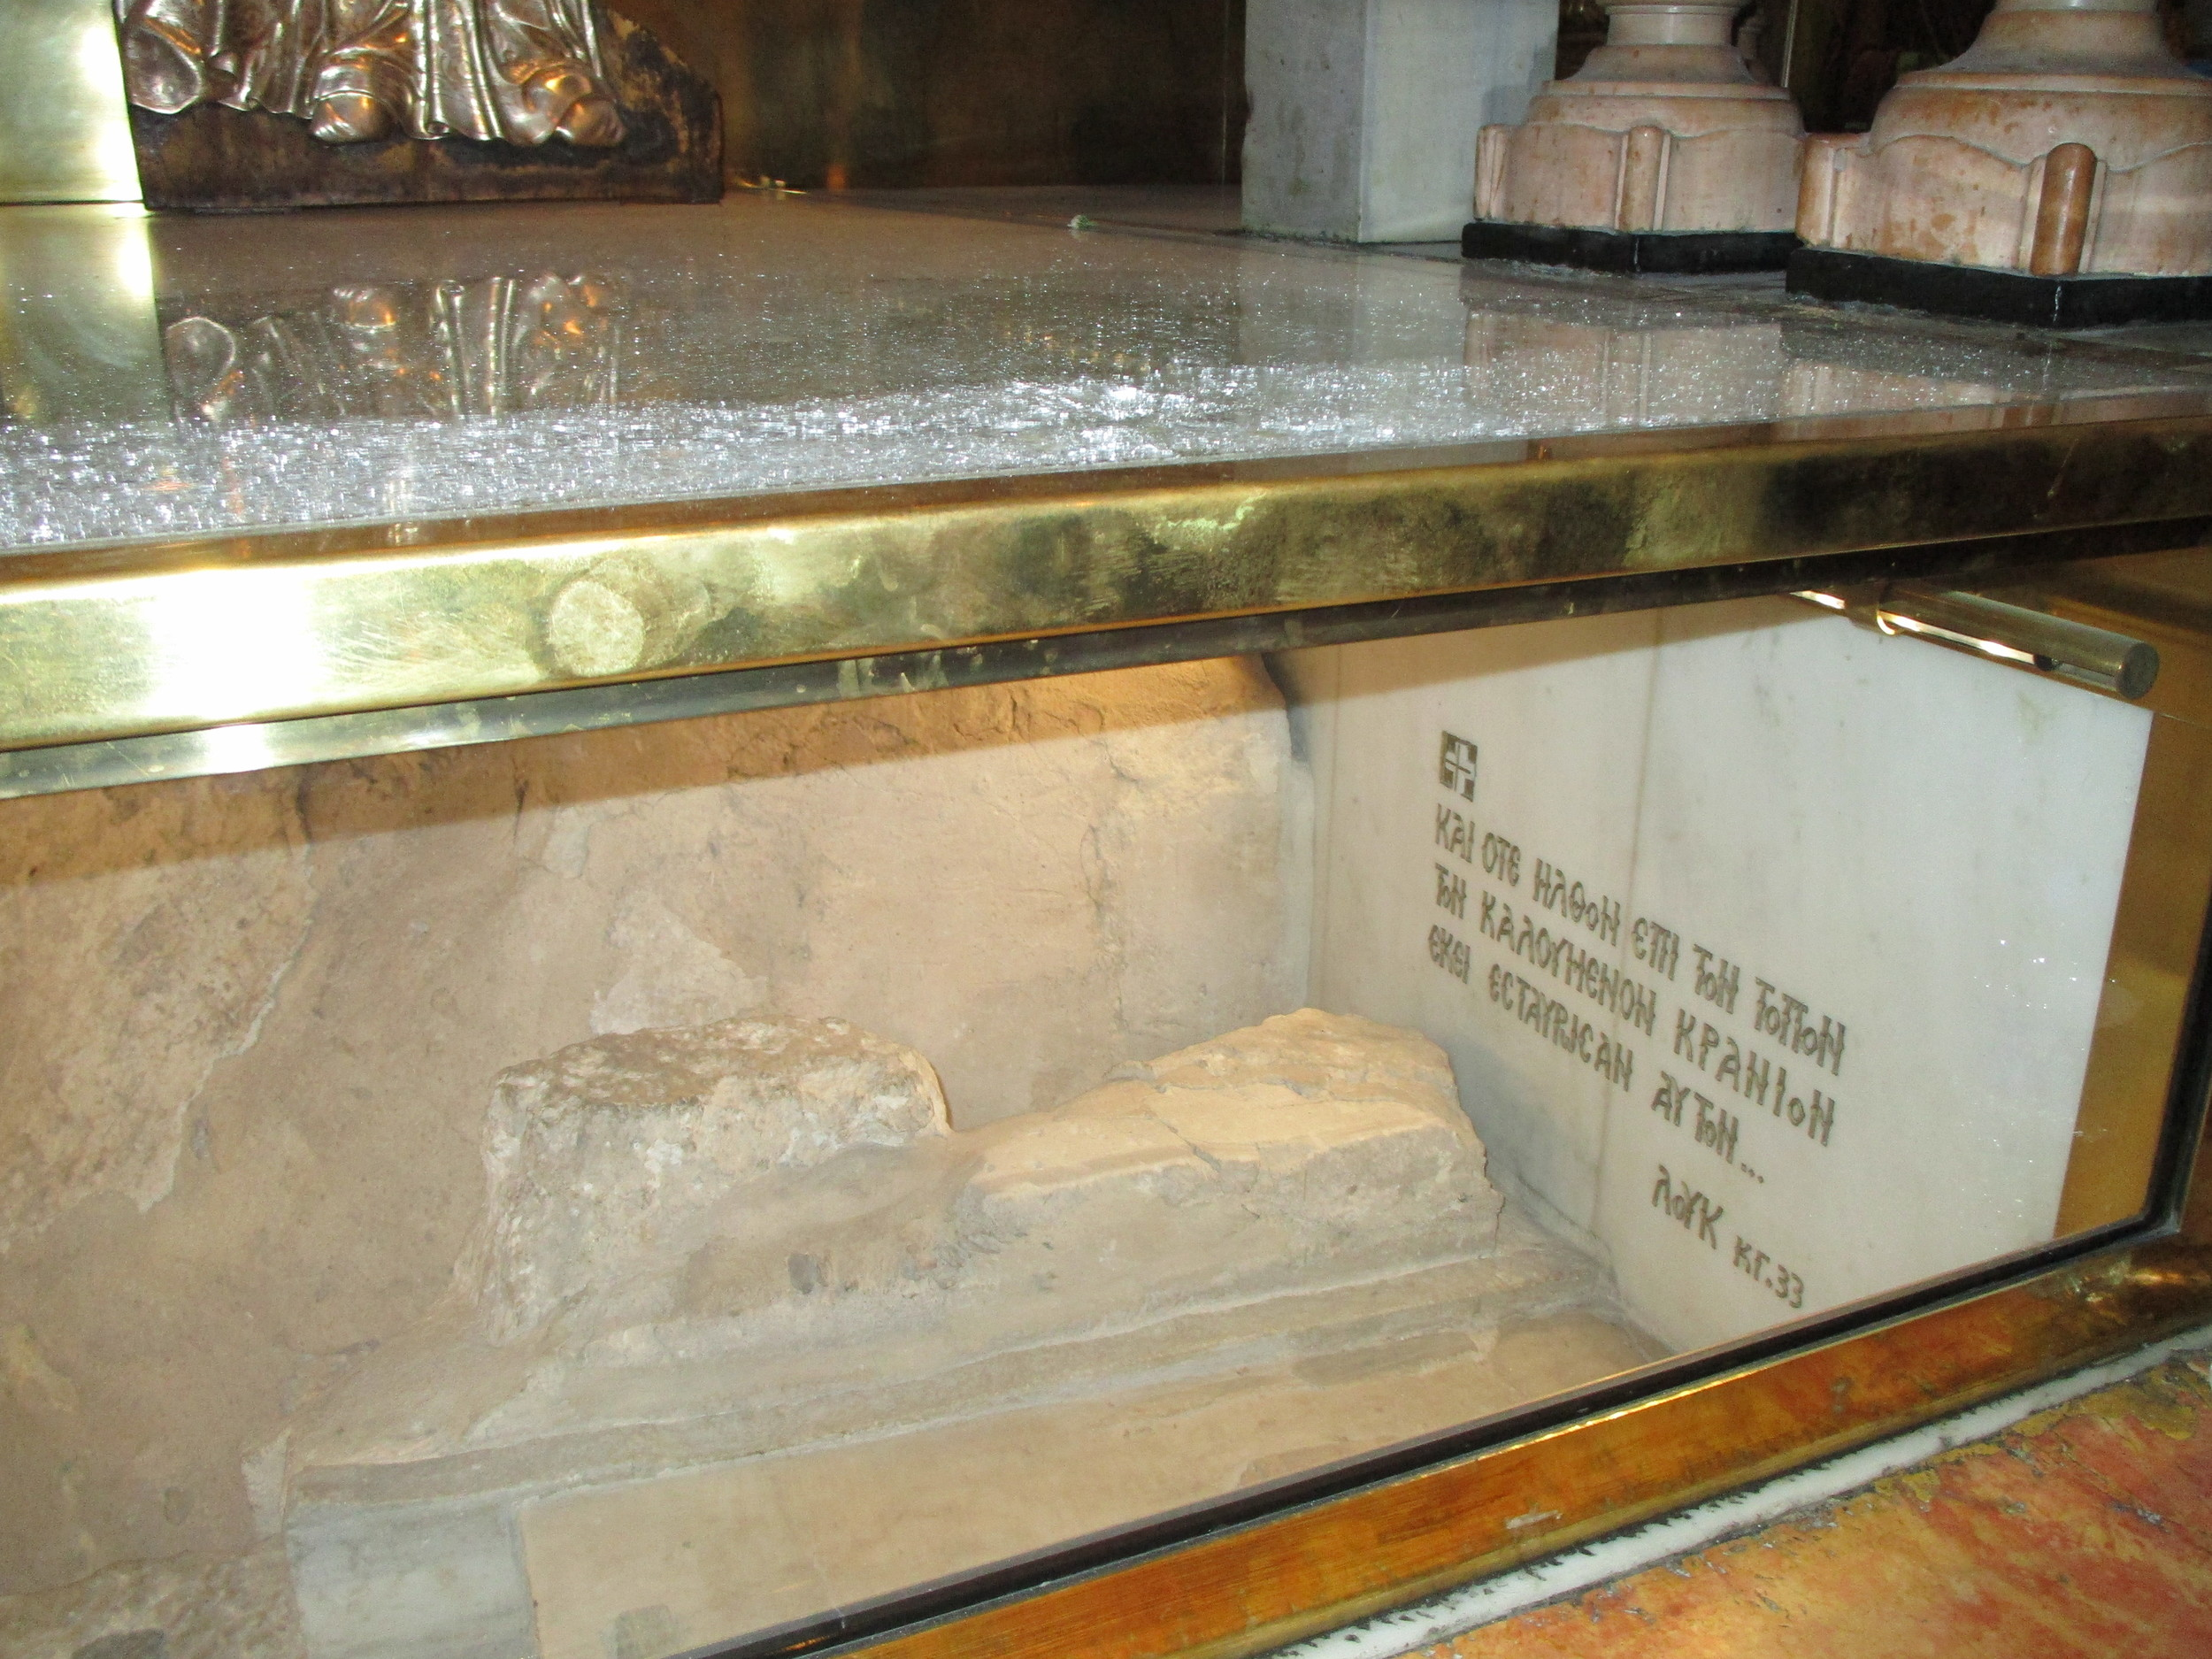 Encased in glass is part of the hill of Calvary. We were able to reach into a small portal and touch the rock. Imagine?